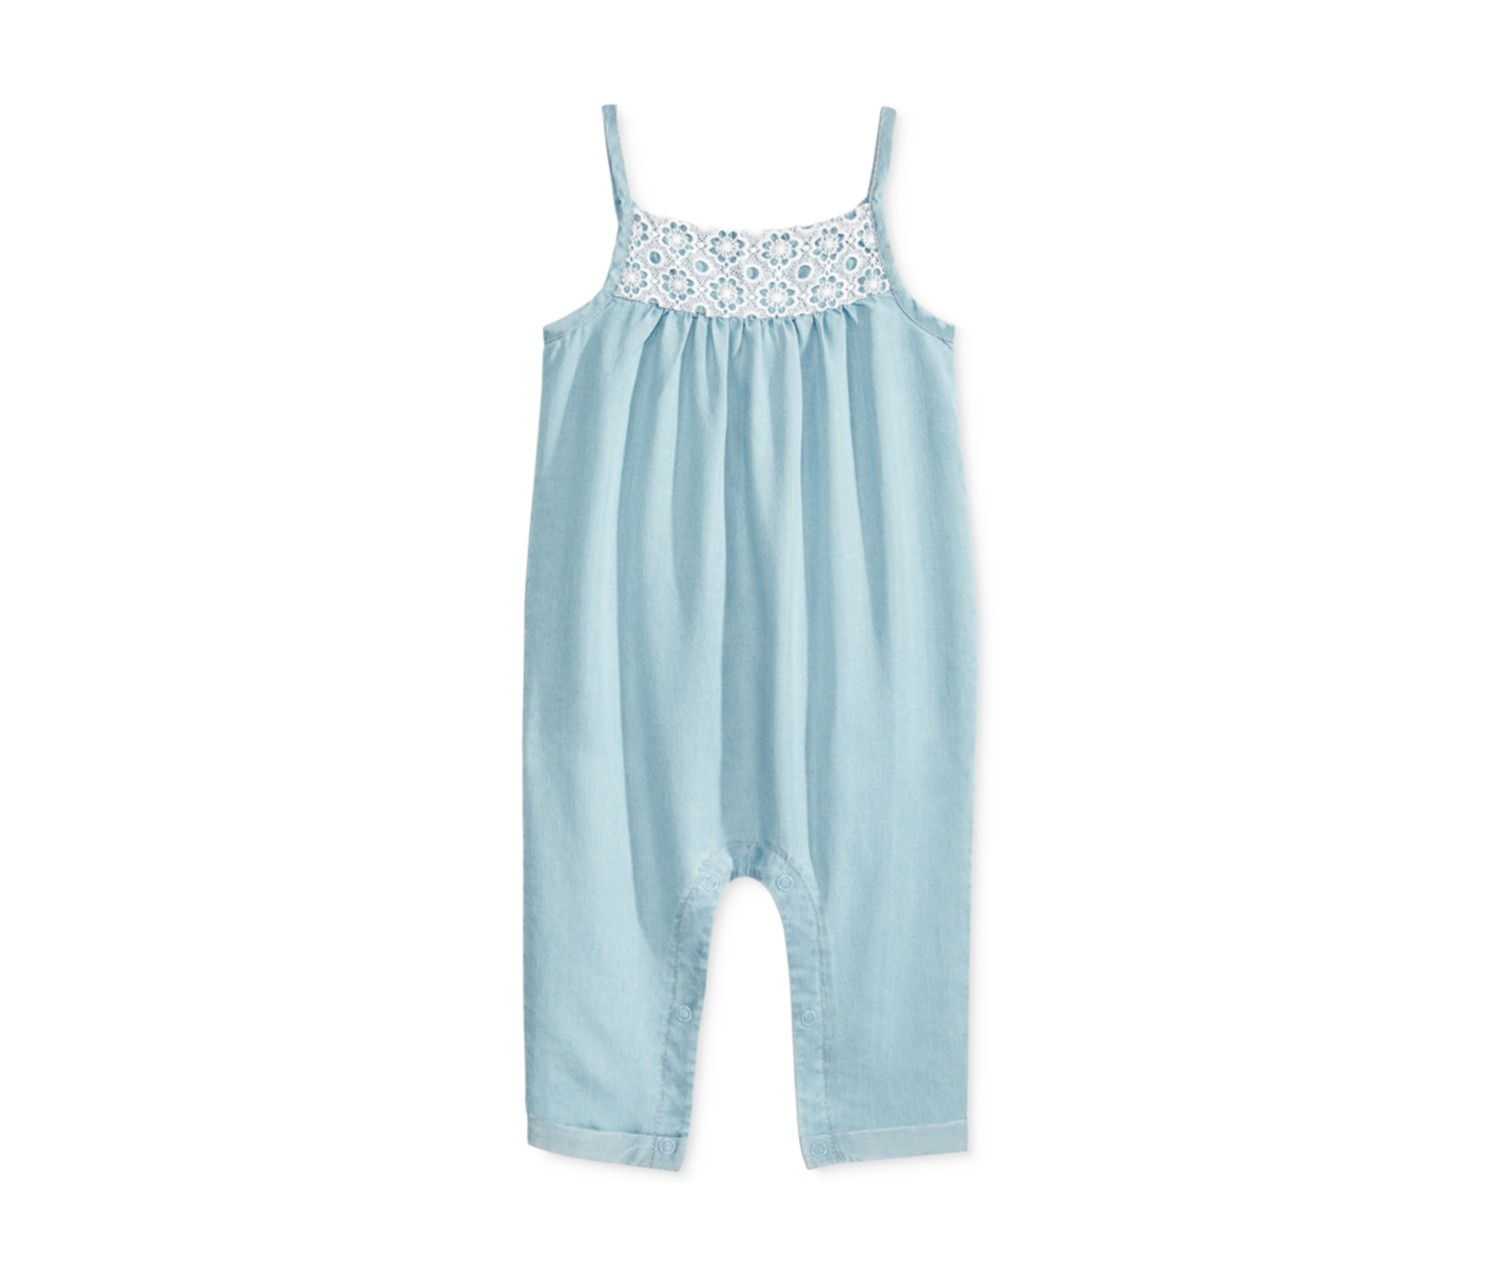 e474940ce Shop First Impression First Impressions Baby Girls Crochet-Detail ...